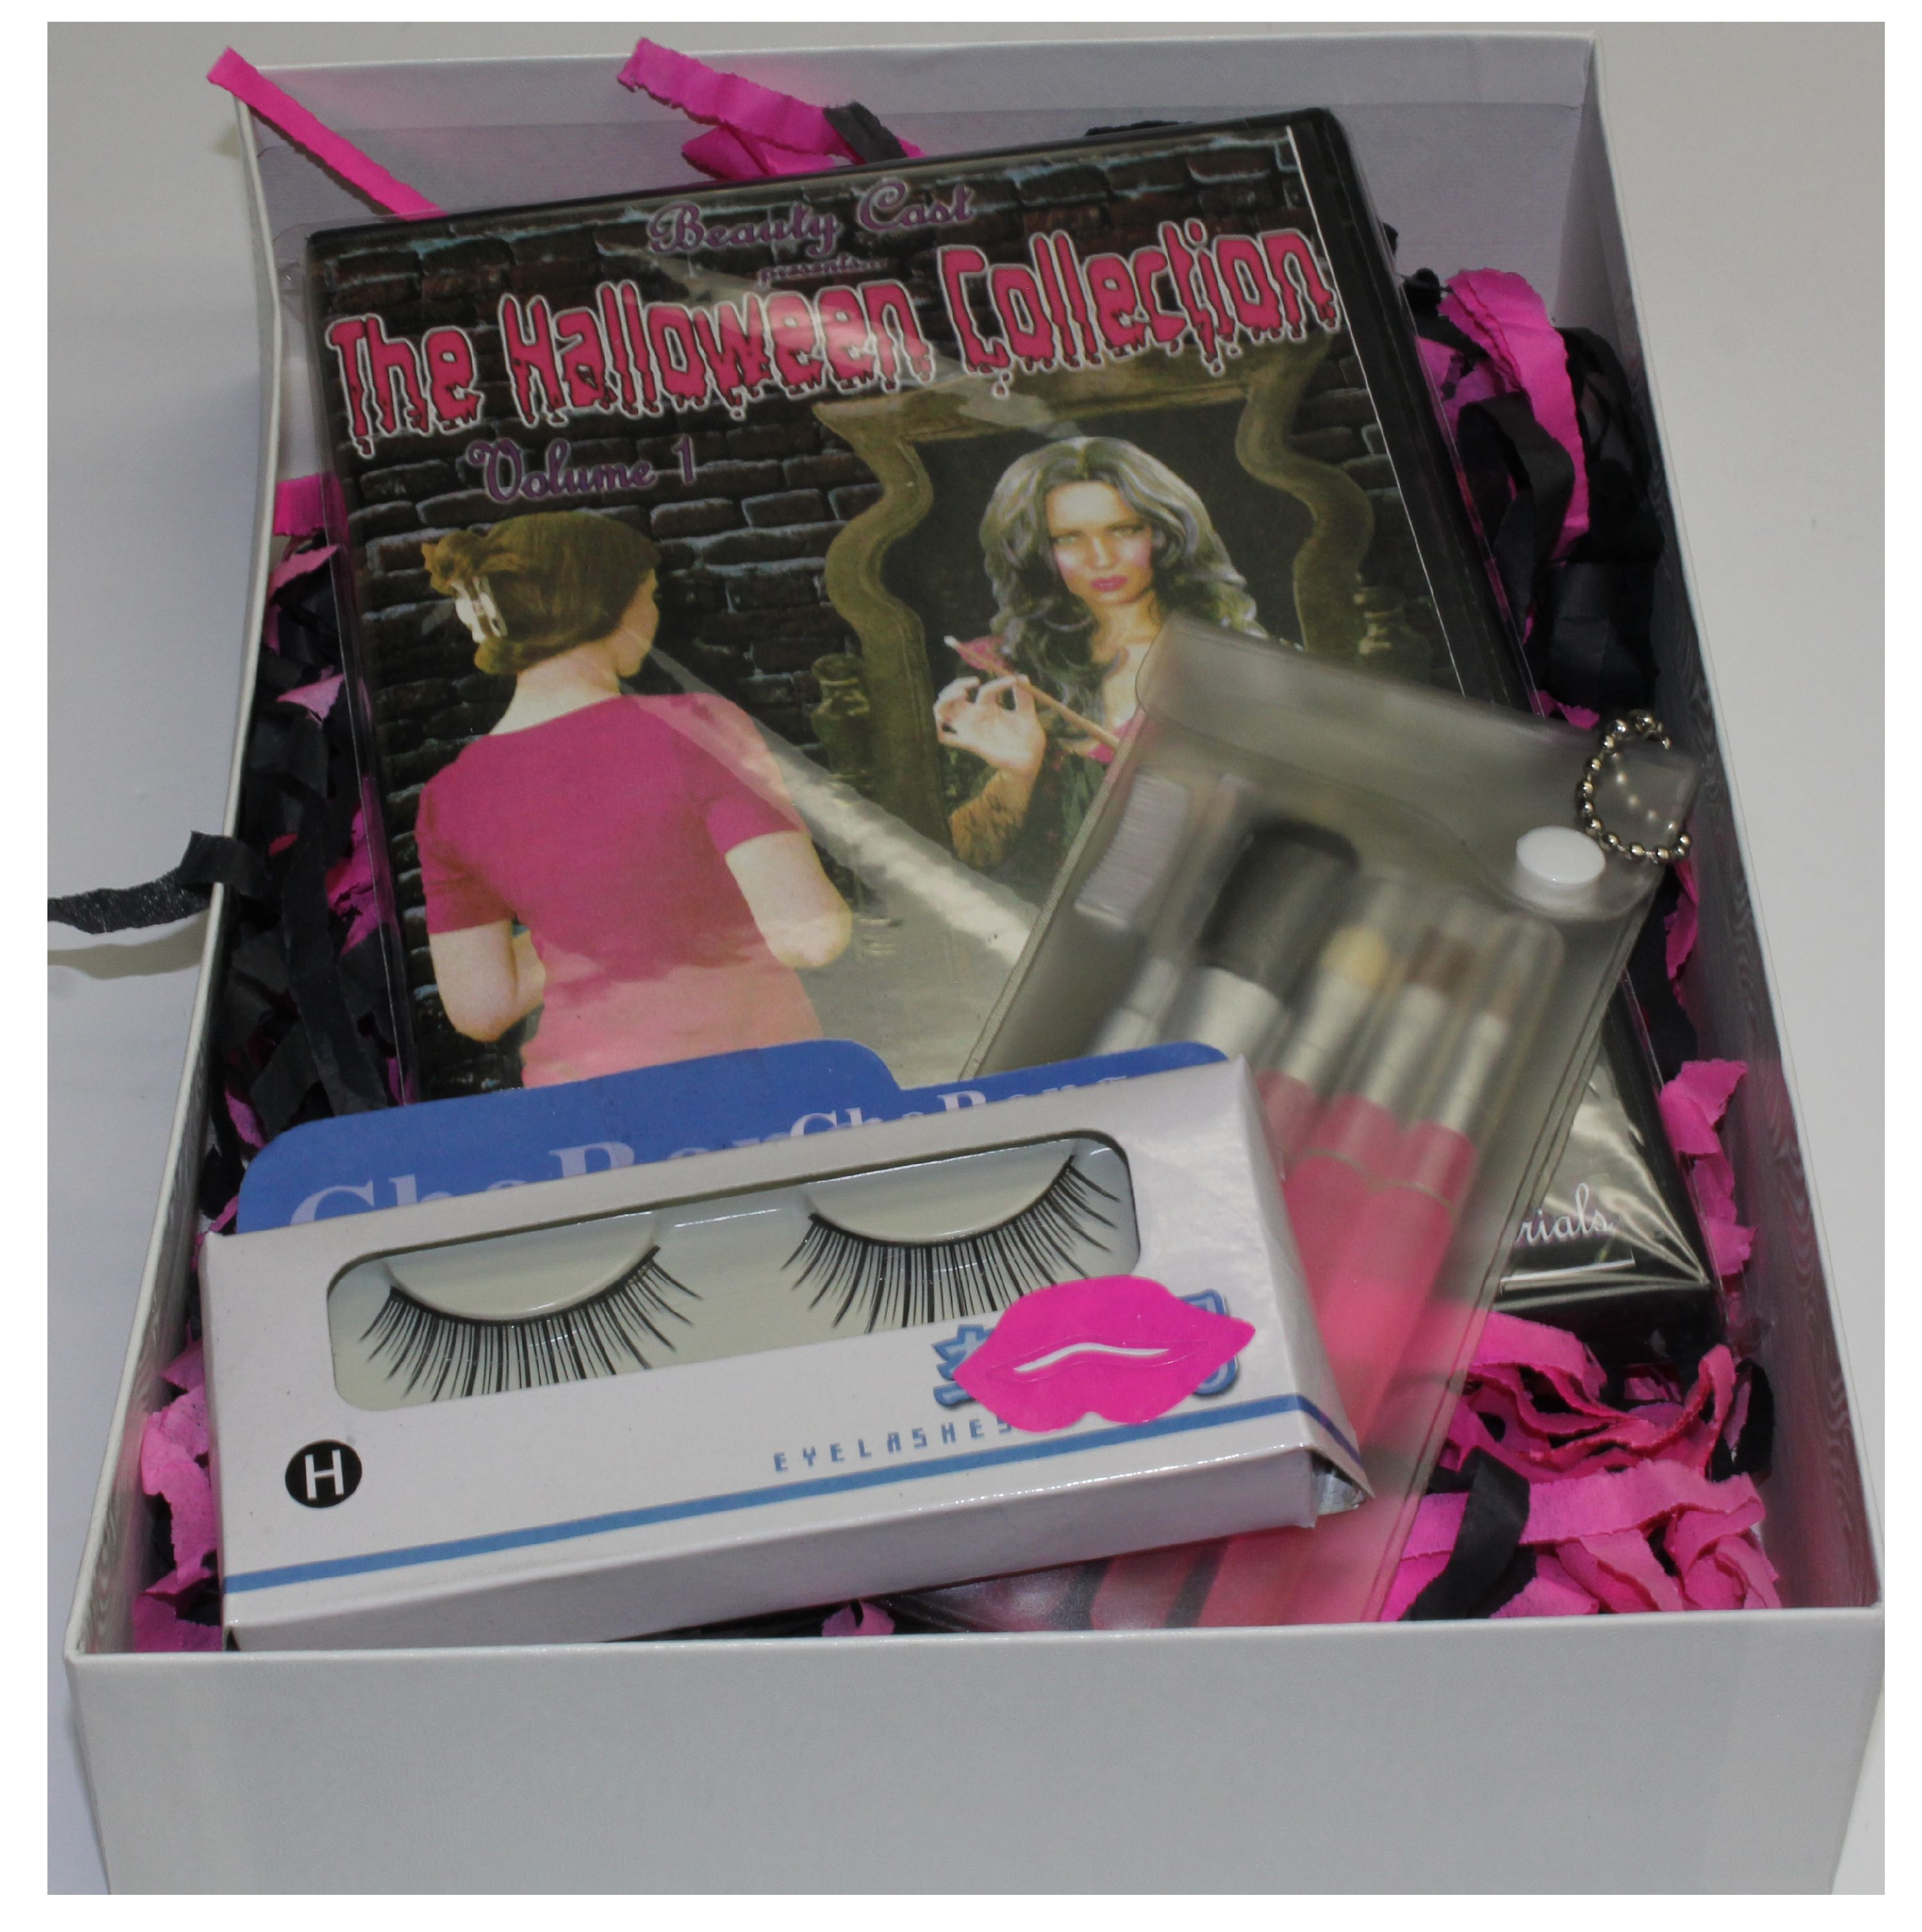 The Halloween Collection: Volume 1 Presented By Beauty Cast- Gift Set